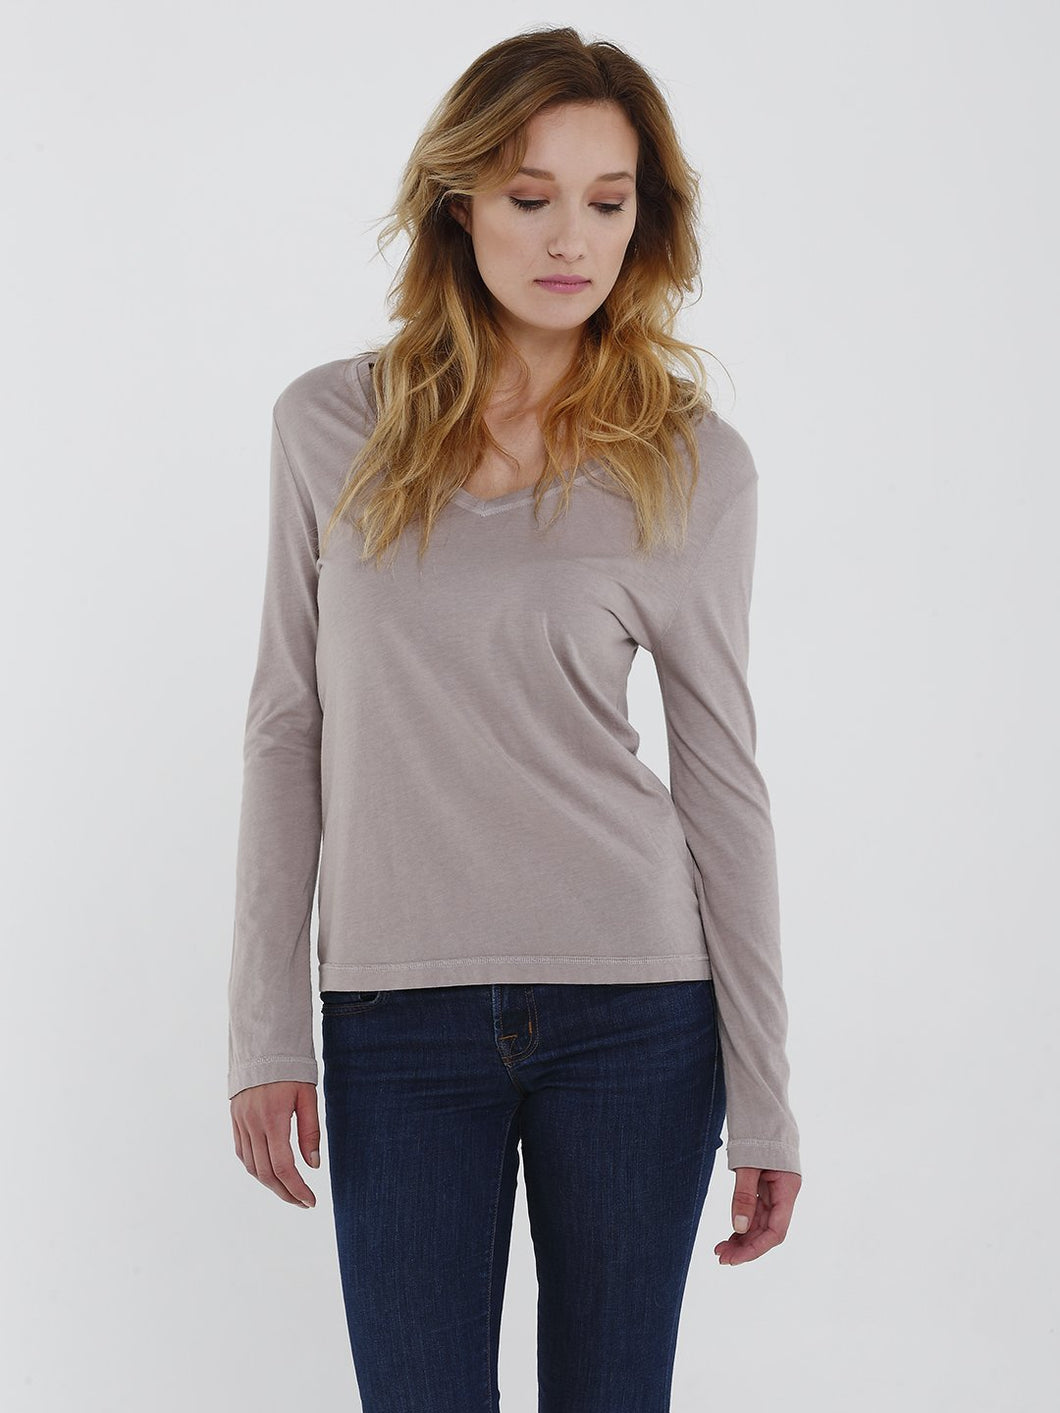 Luxe Long Sleeve Angie Vneck Tee